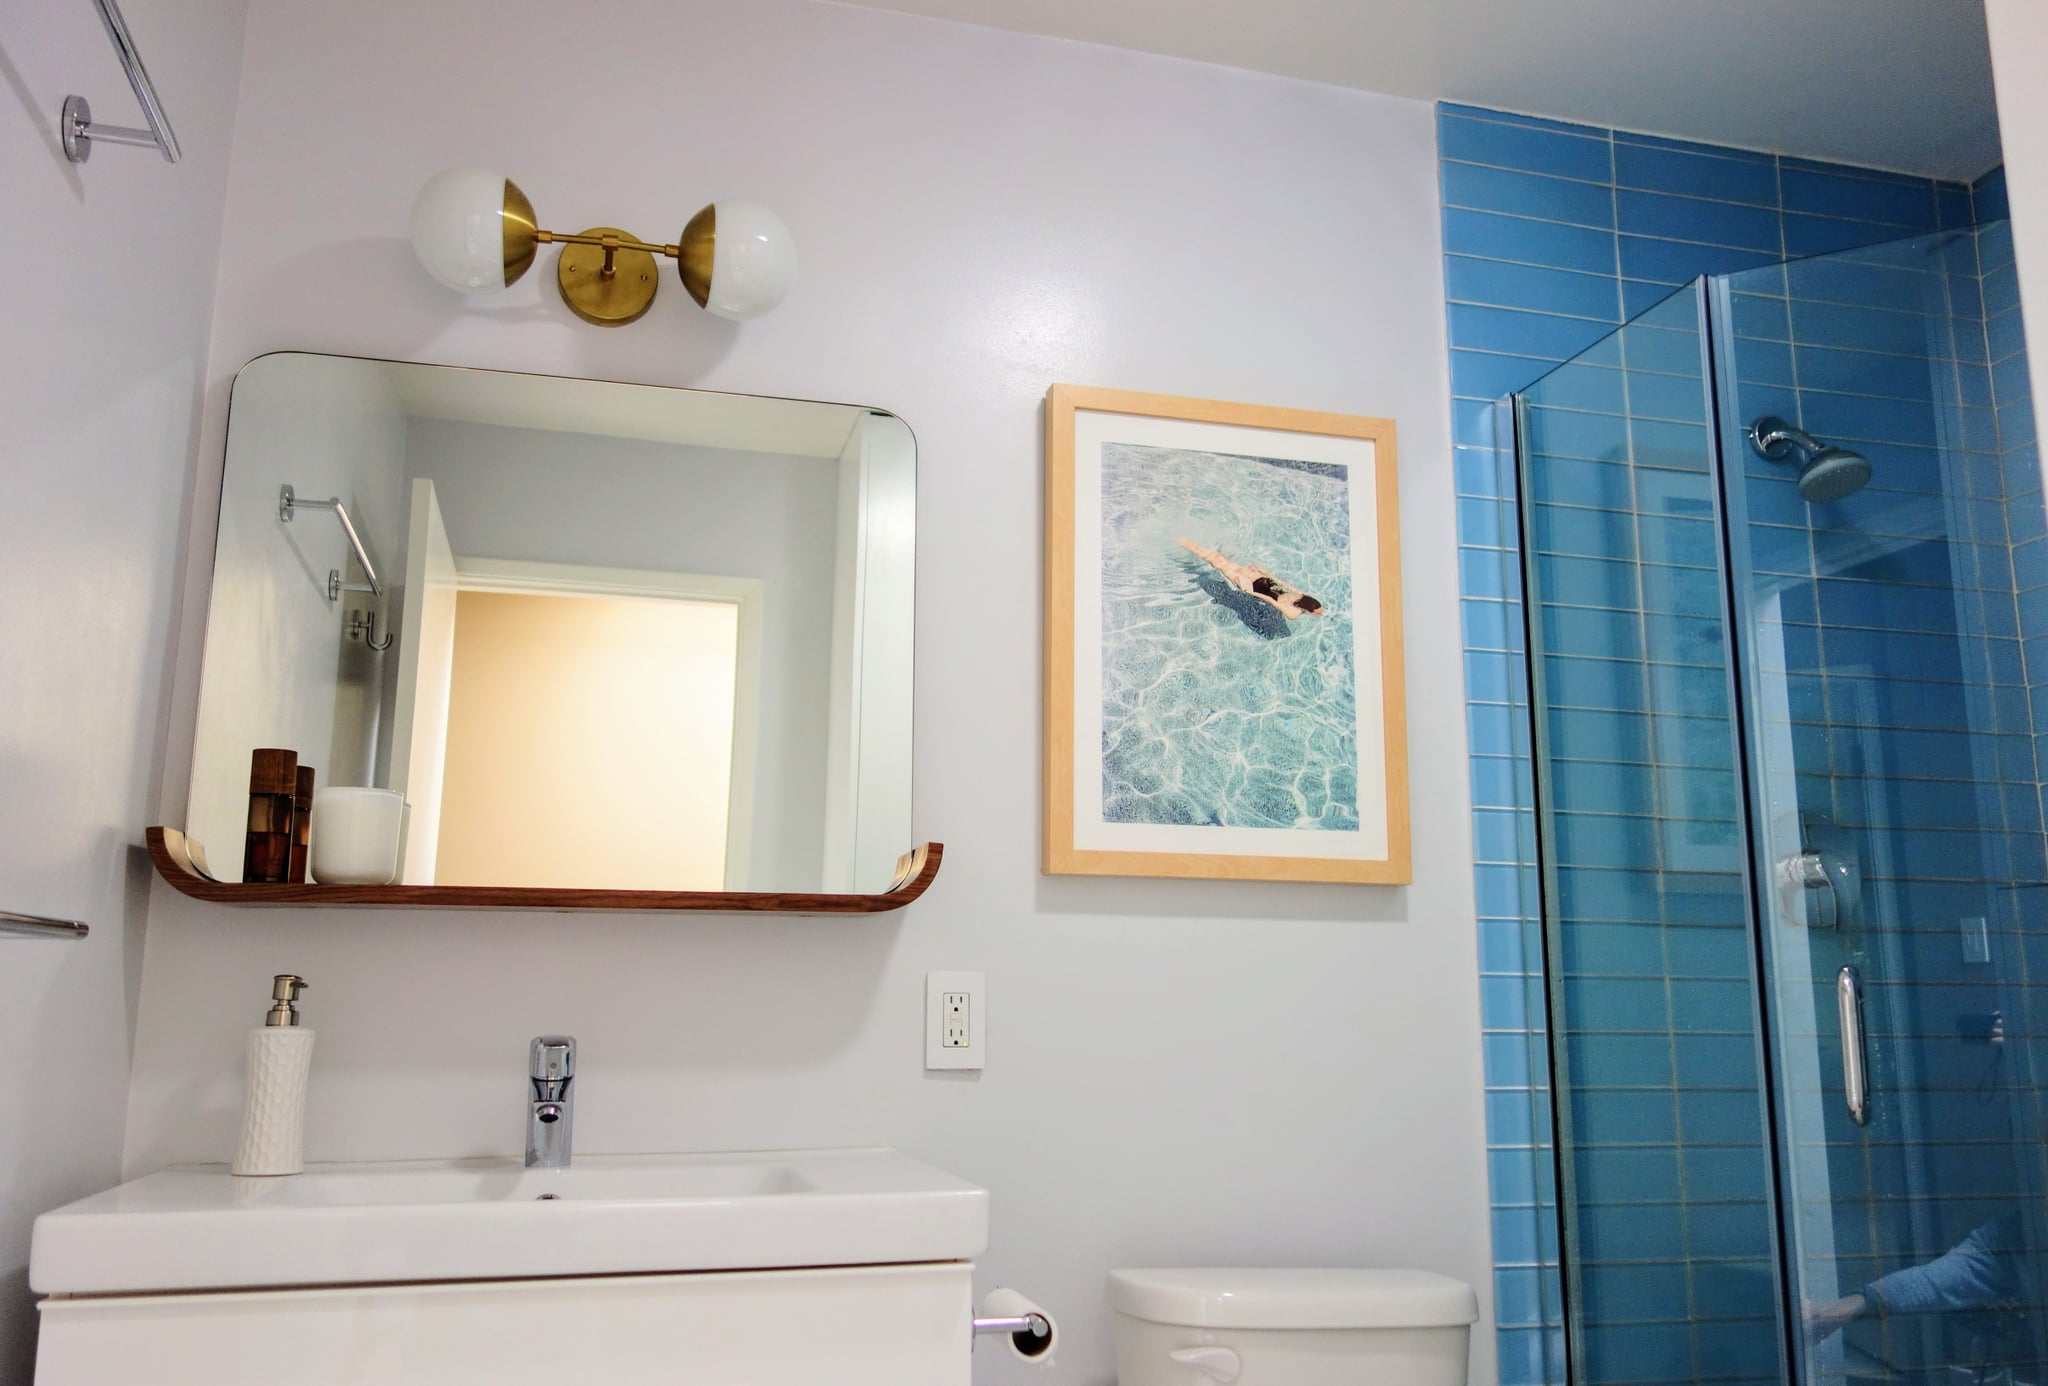 Bathroom Updates For Resale | POPSUGAR Home